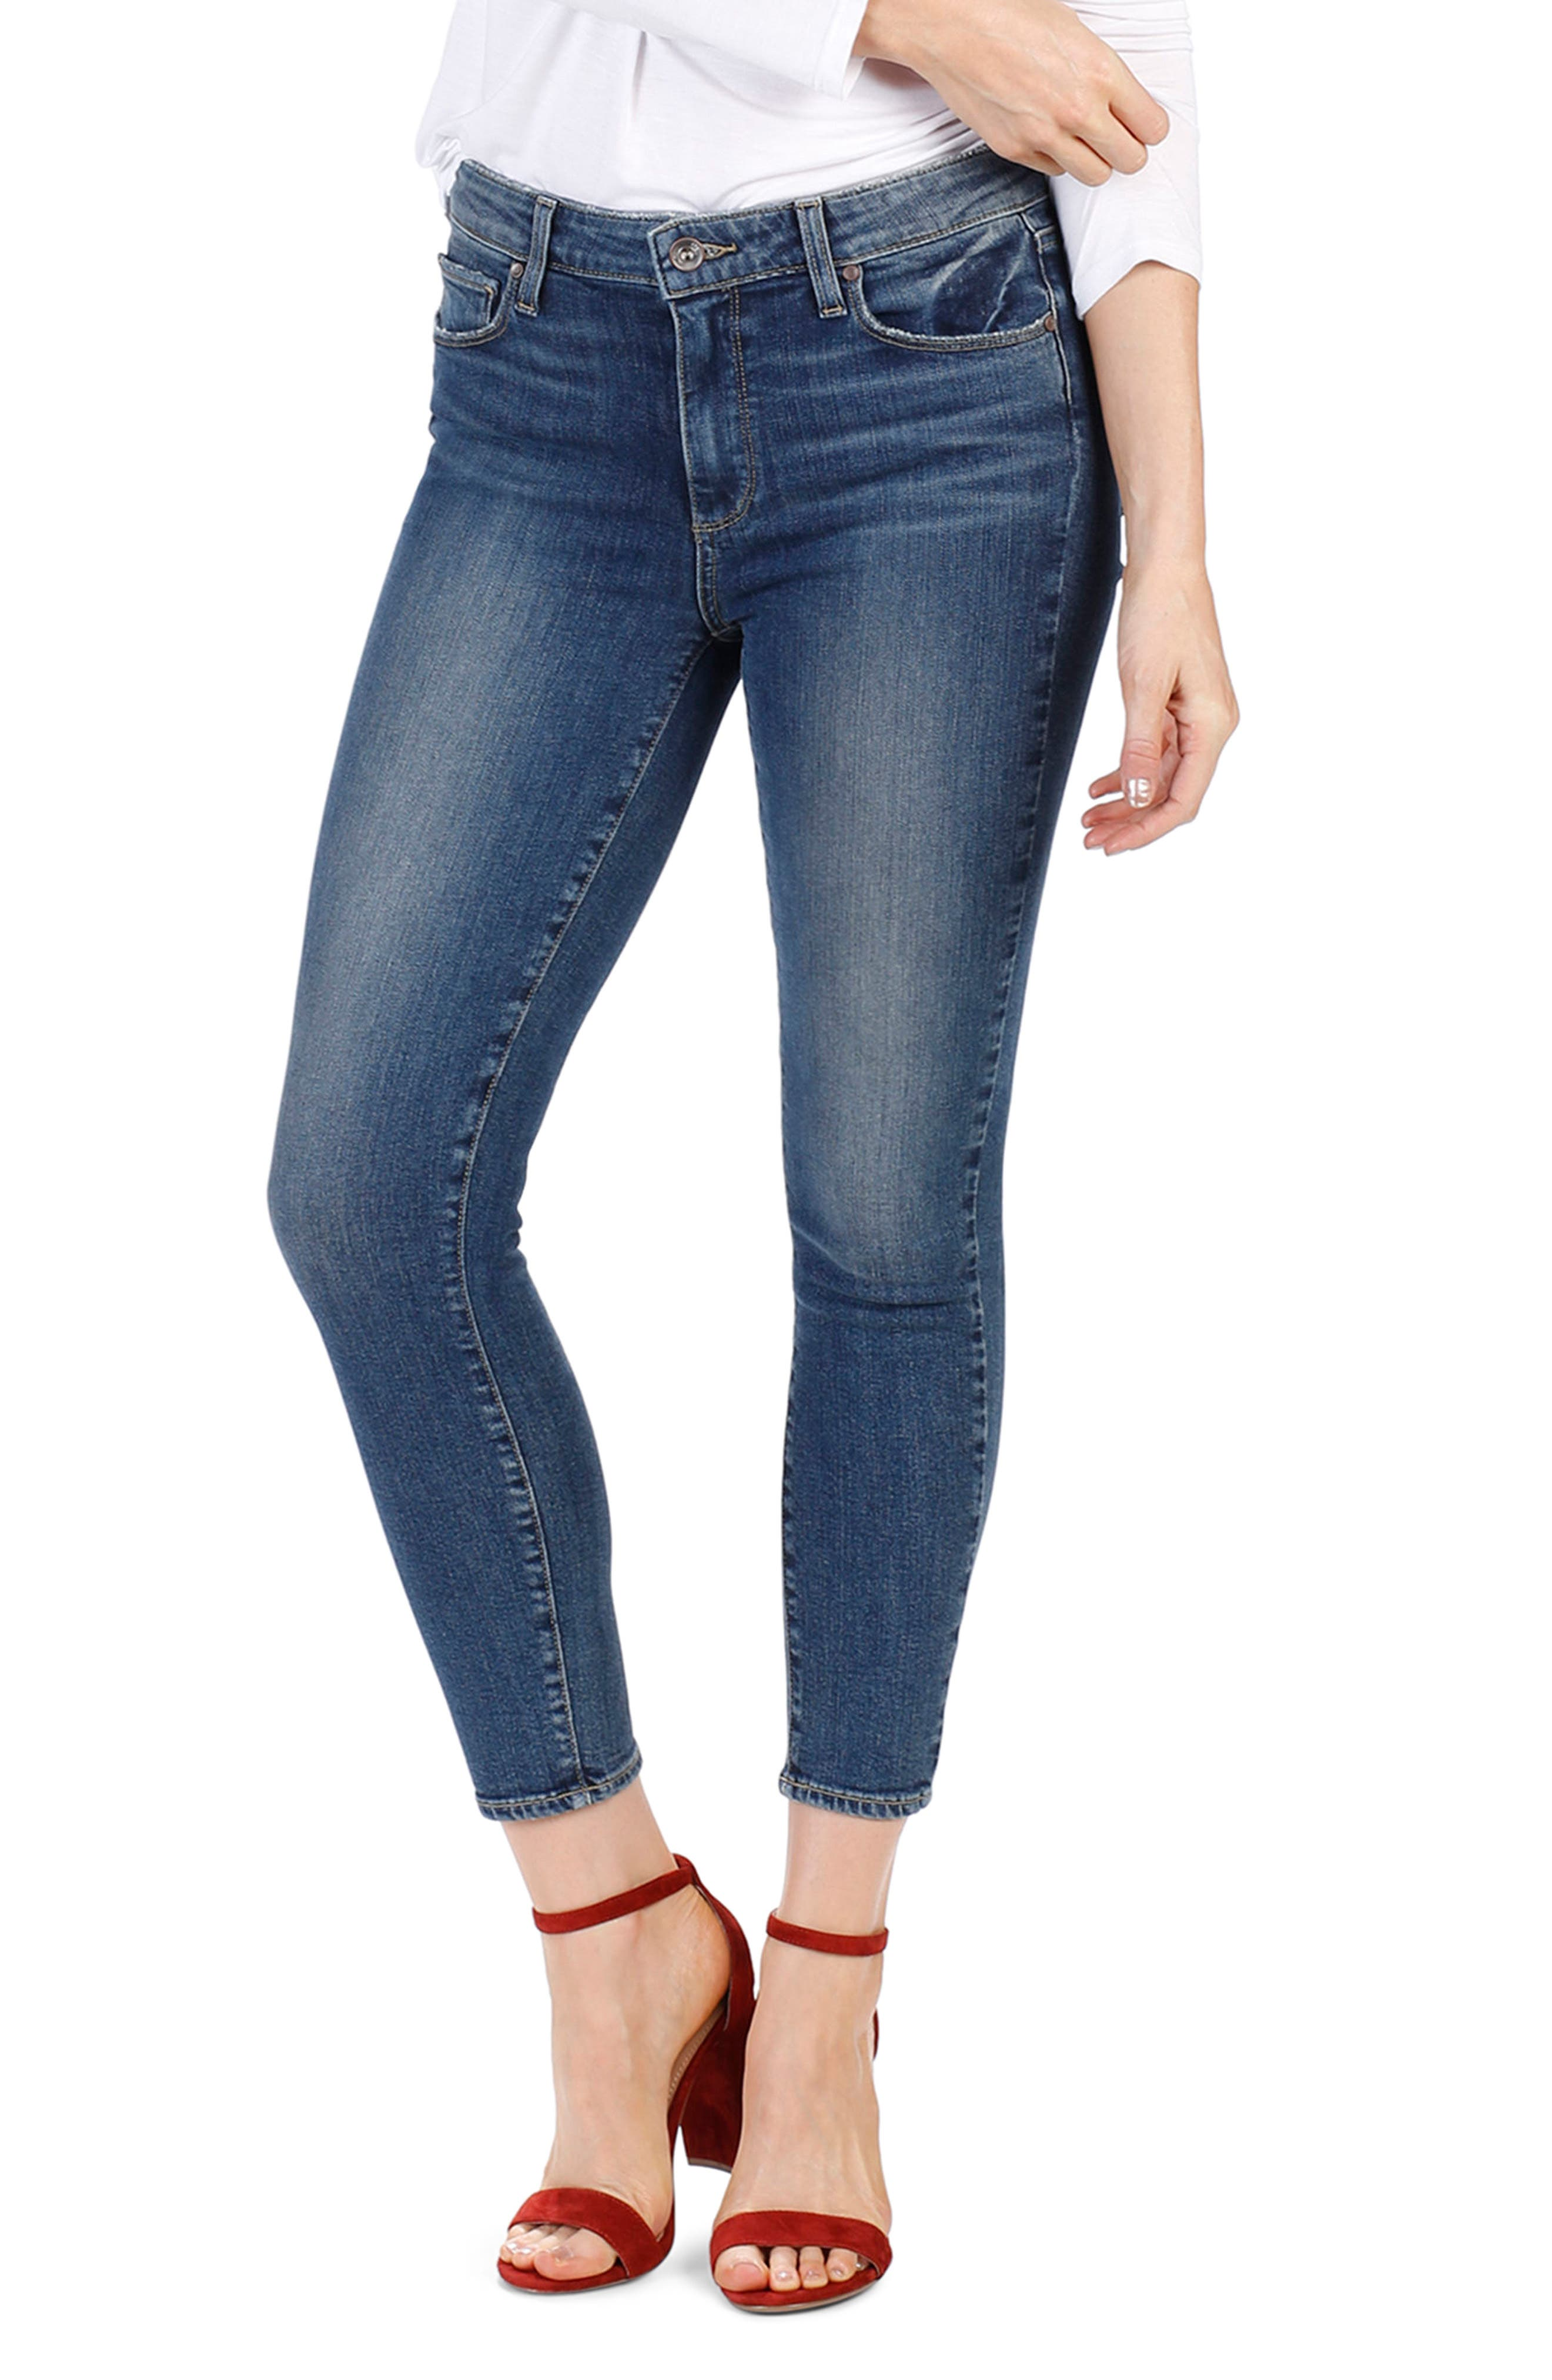 Hoxton High Waist Crop Skinny Jeans,                             Alternate thumbnail 3, color,                             Luca